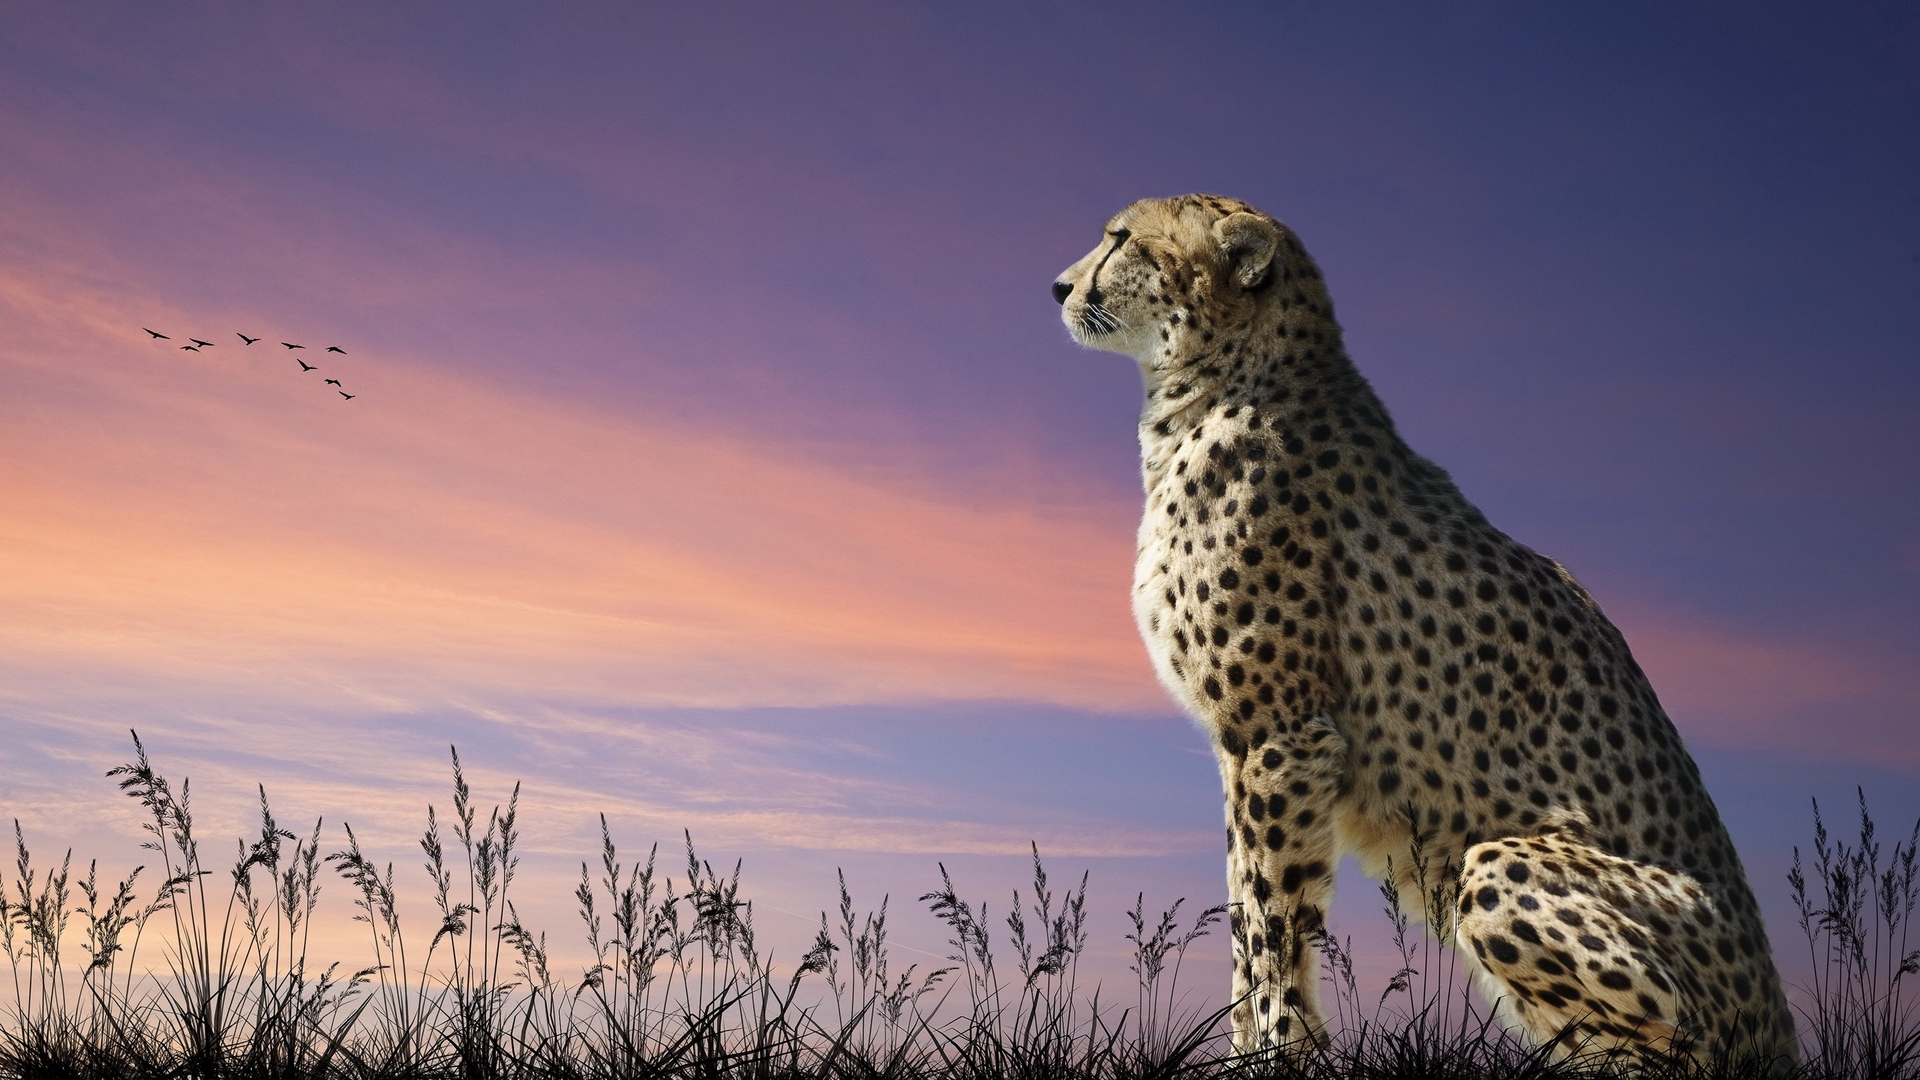 download wallpaper: een zittende cheetah wallpaper